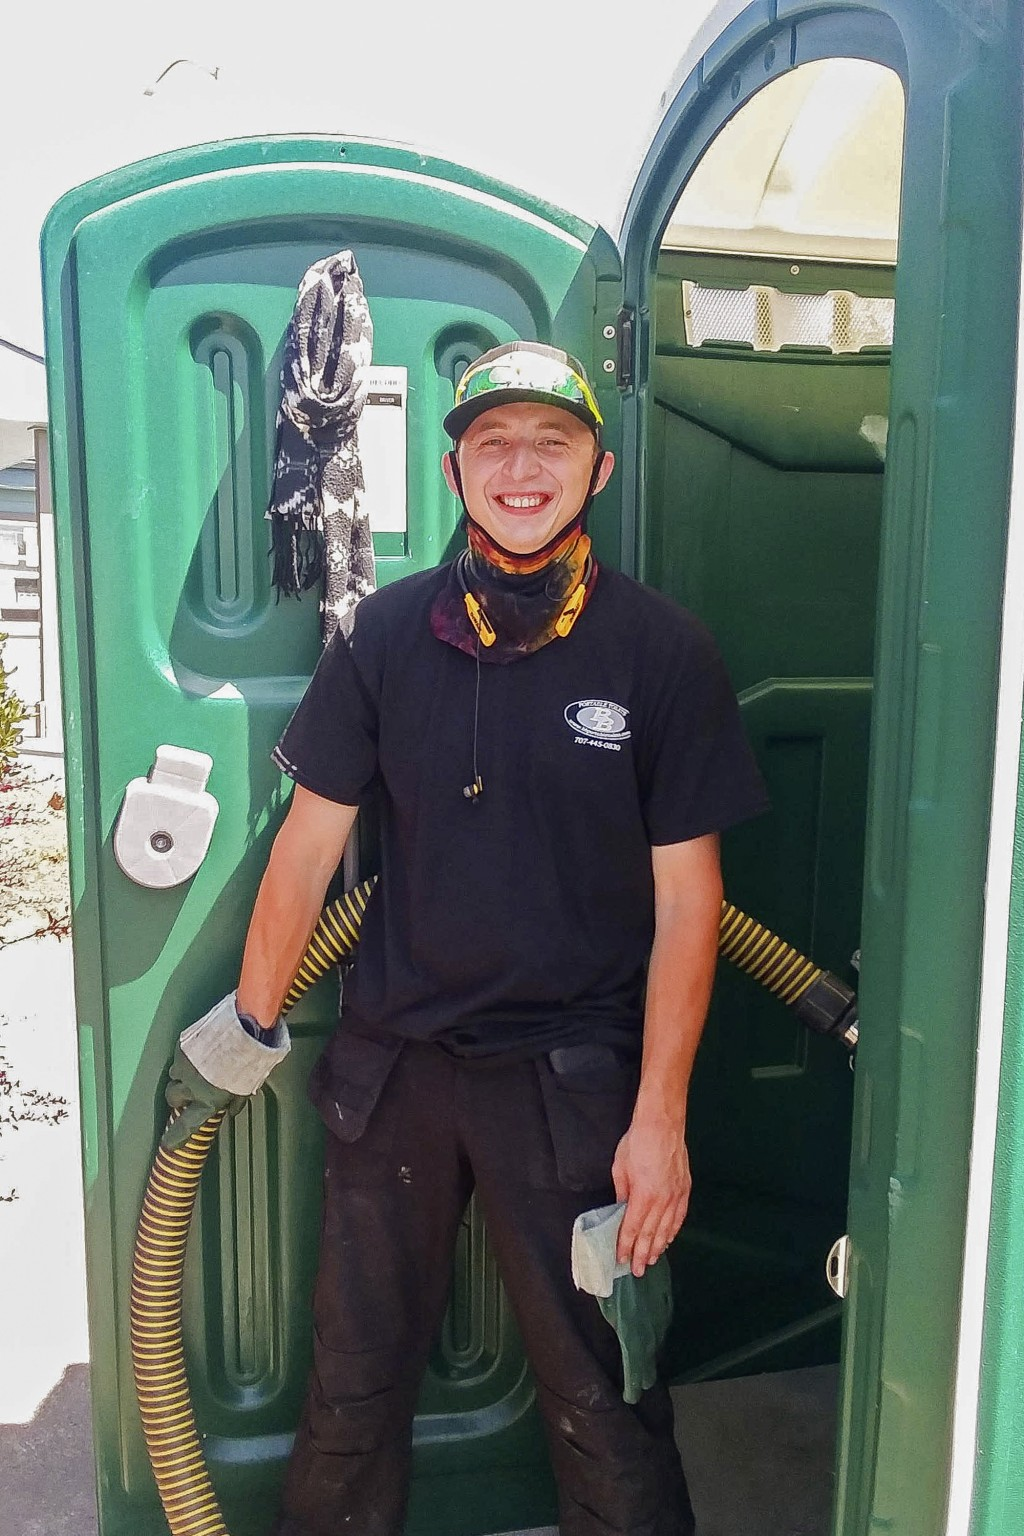 Donnie Settles, 27, stands near a portable toilet on July 14, 2020, which he services for his employer in Arcata, Calif. Settles lived at an emergency...